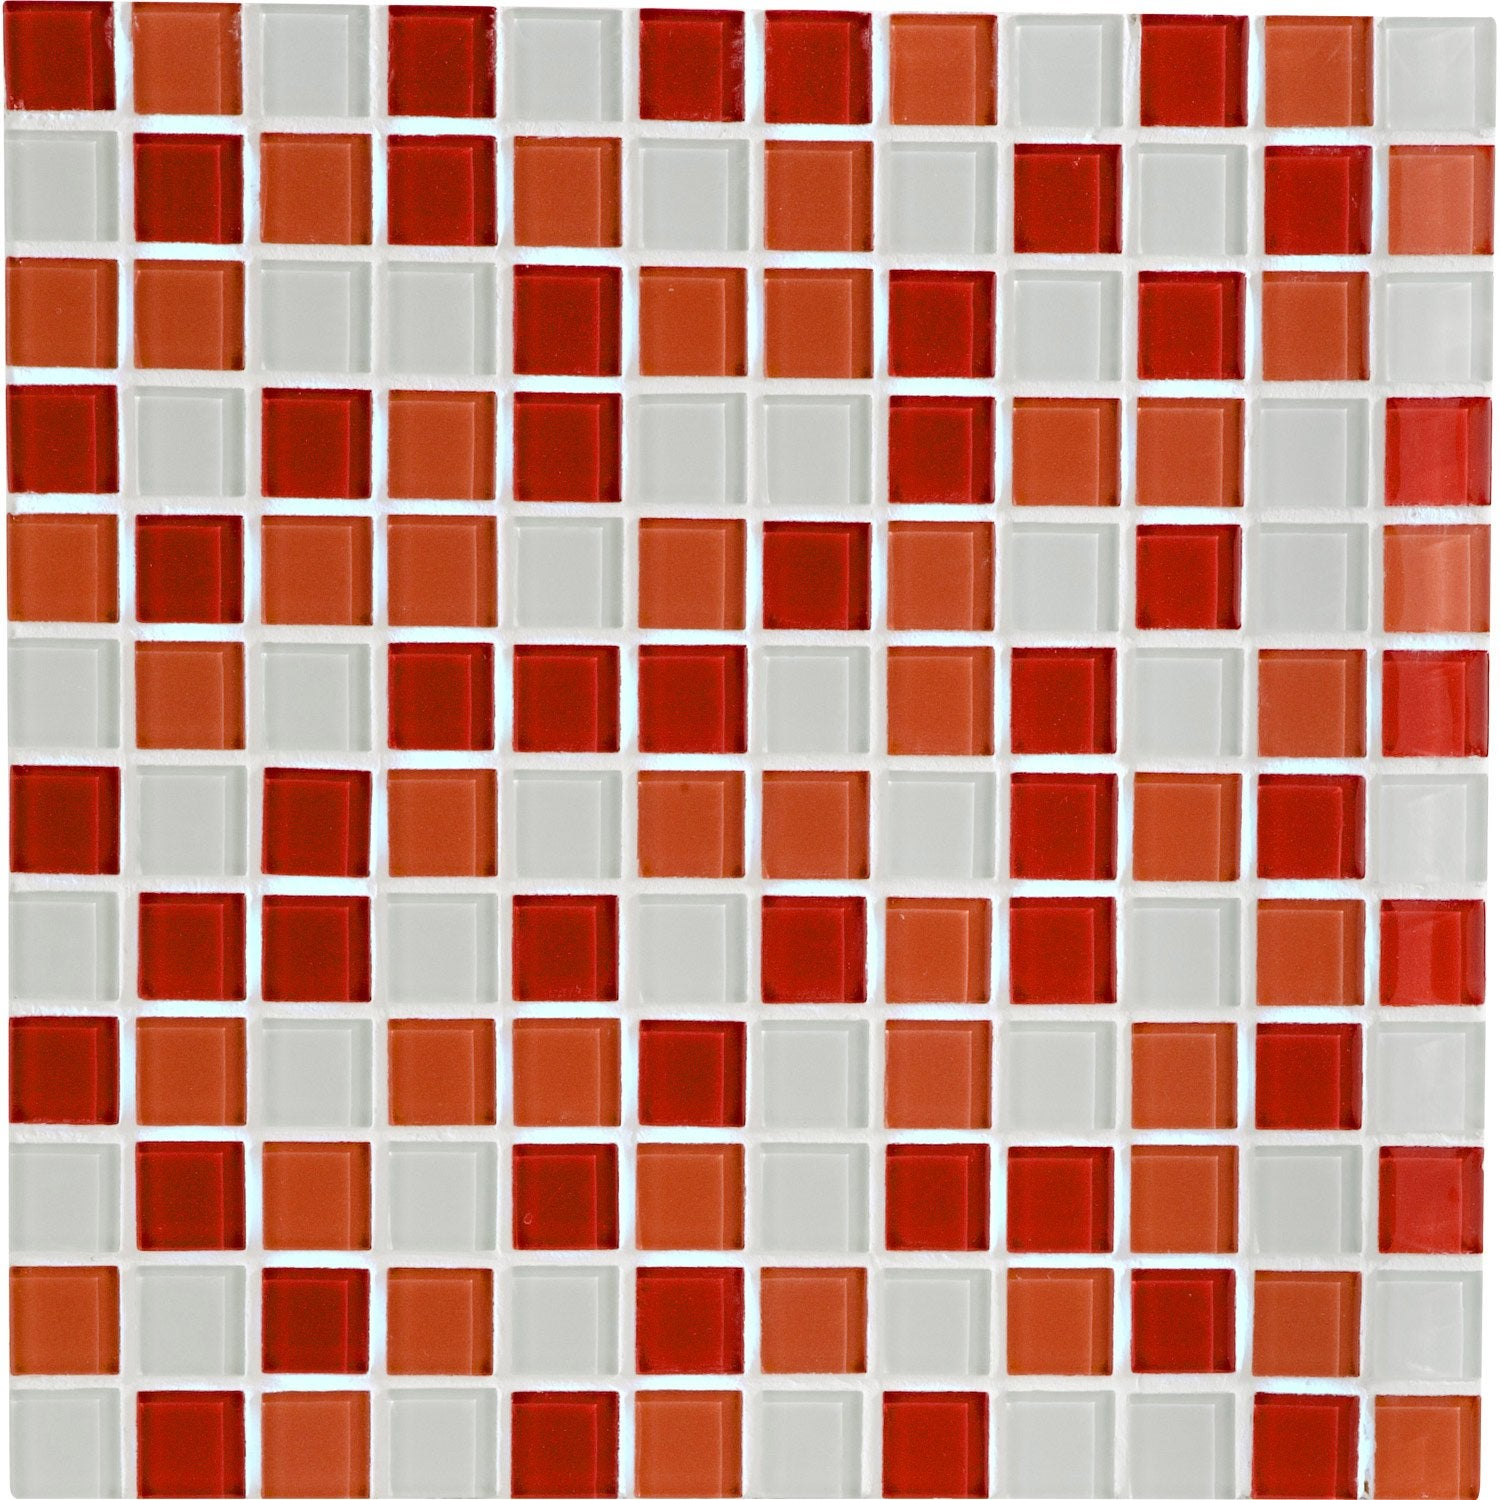 Mosa que mur shaker mix rouge leroy merlin for Carrelage mosaique leroy merlin